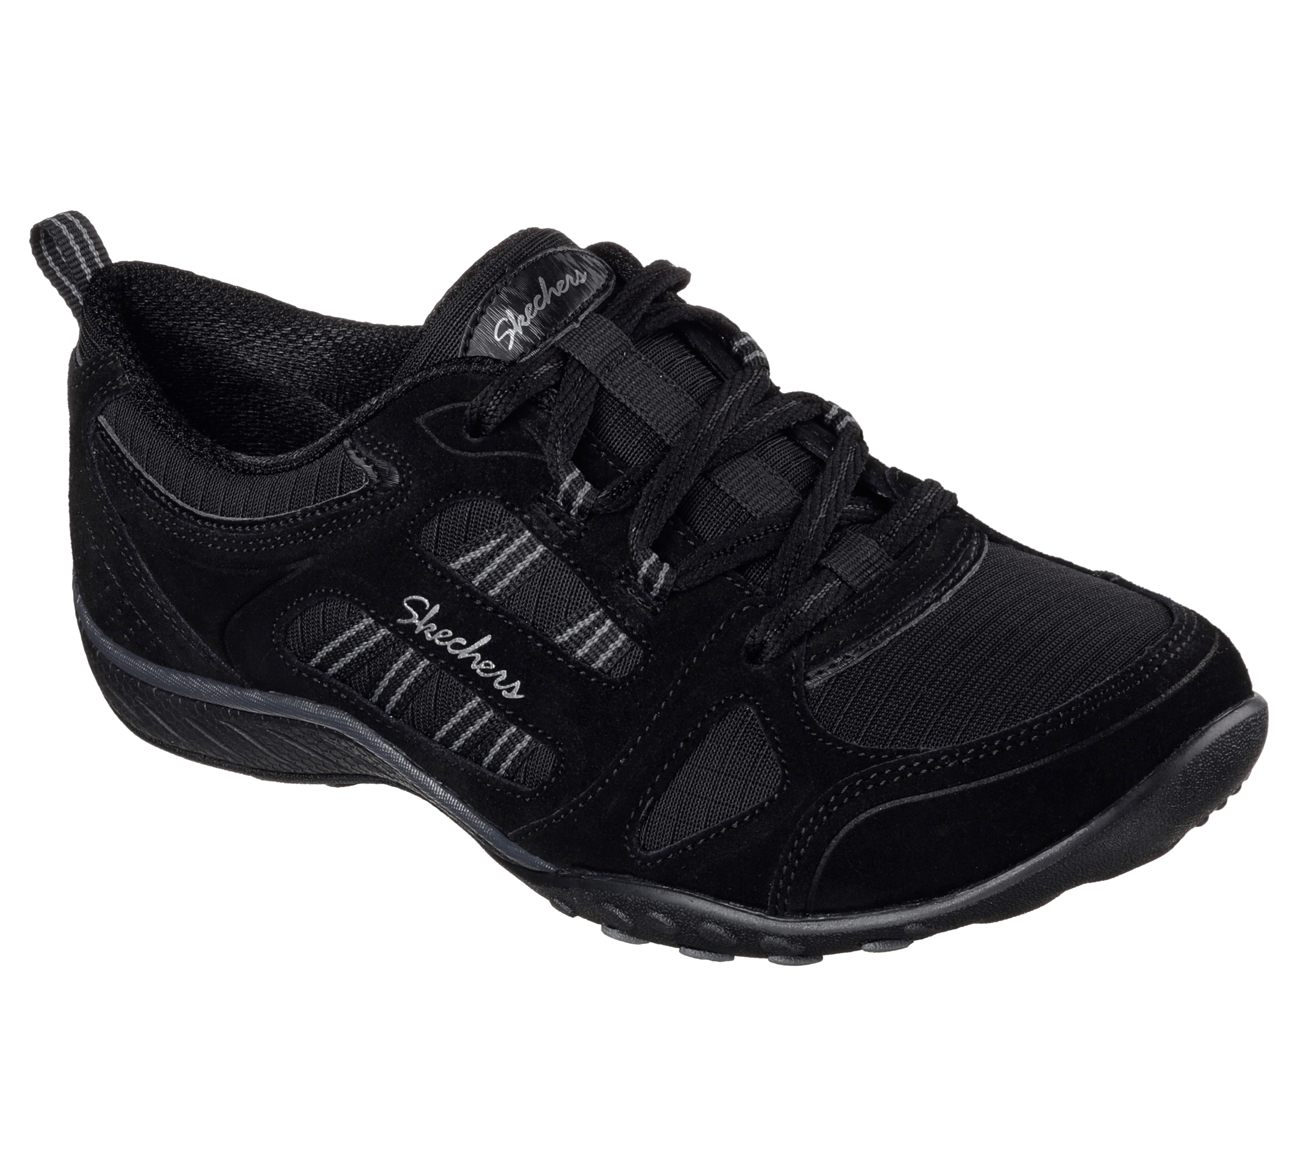 Skechers Relaxed Fit Breathe Easy Good Luck Women S Shoes